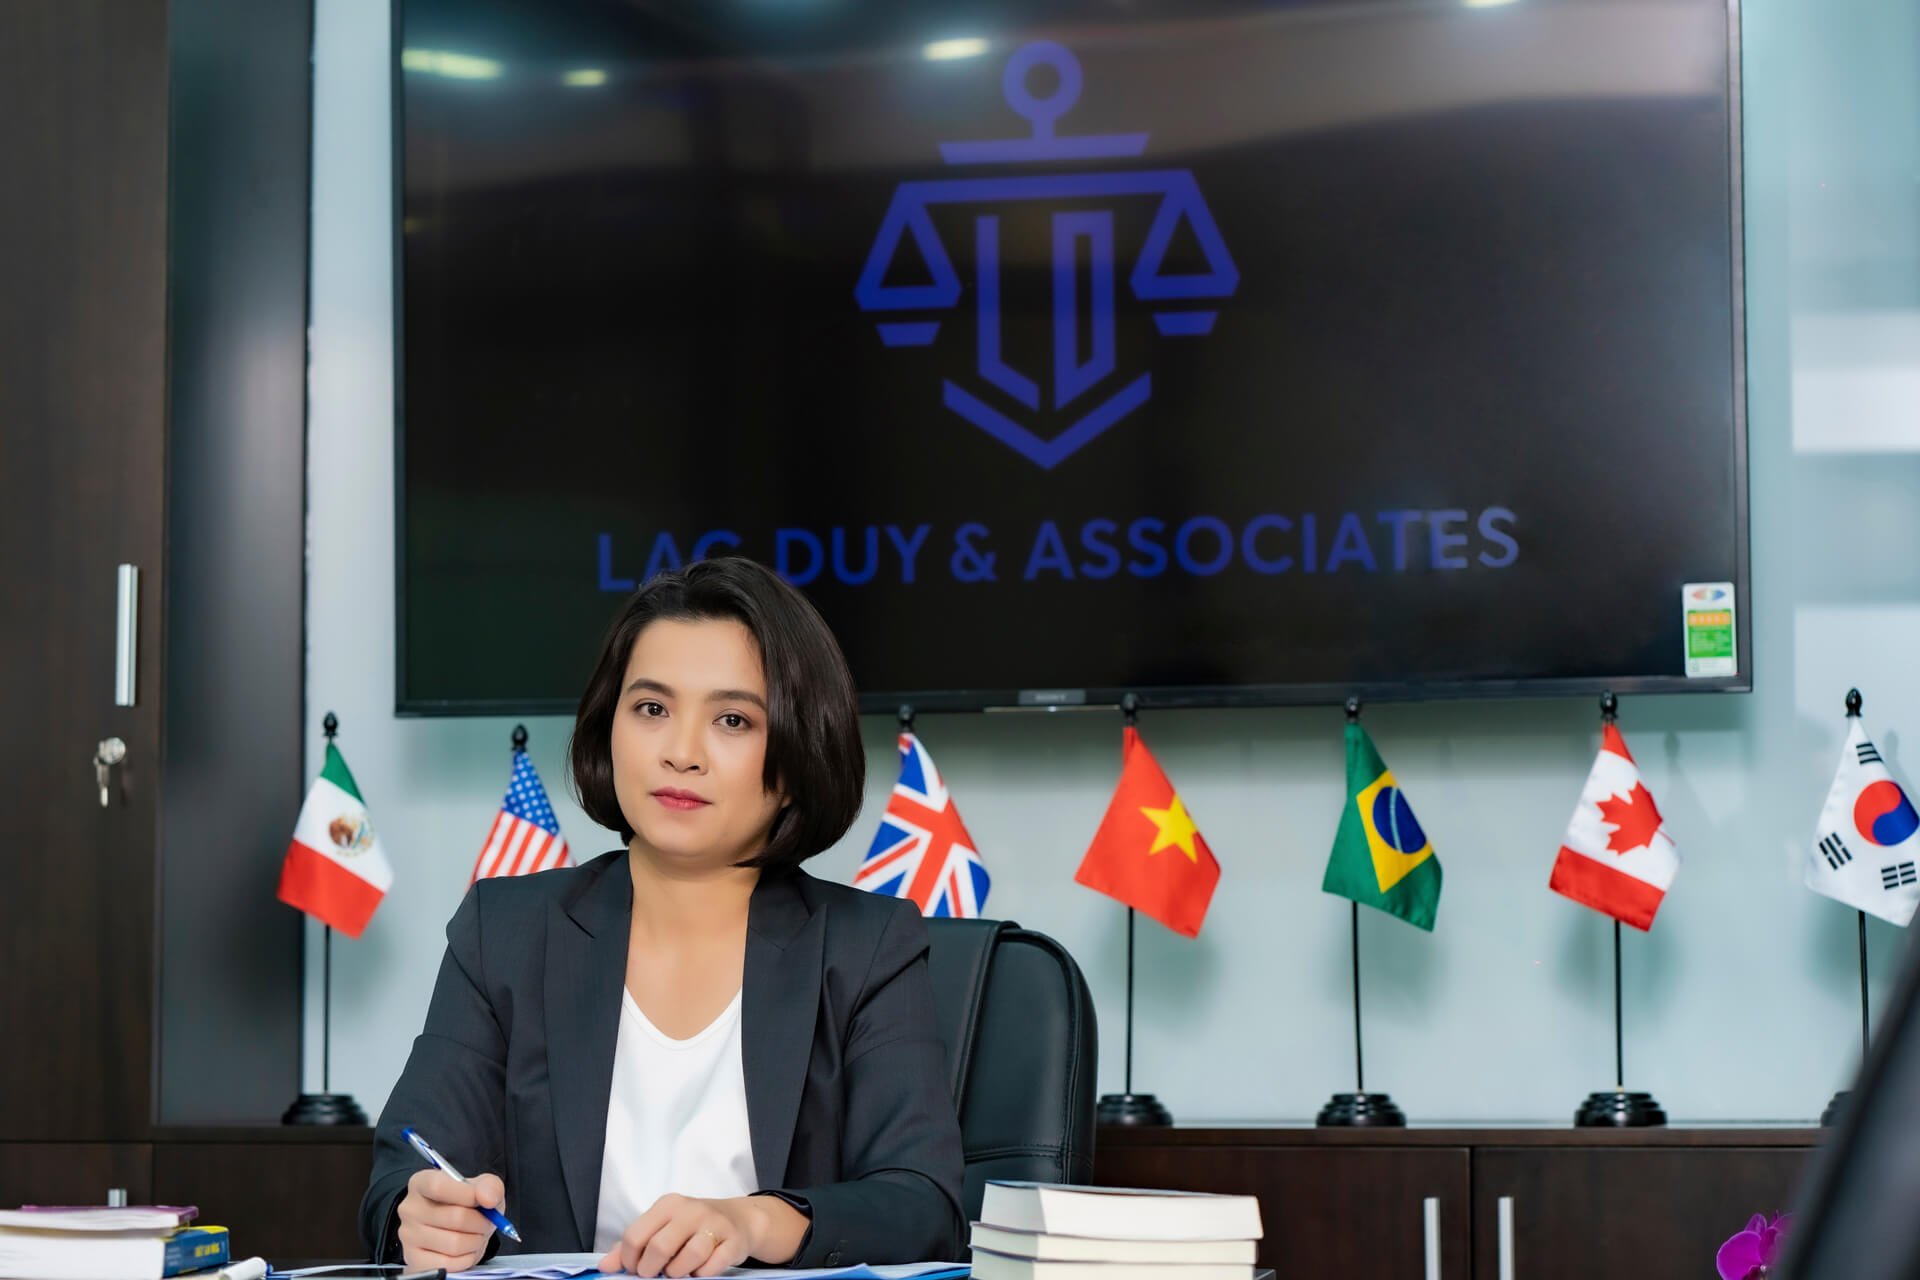 lac-duy-associates-law-firm (1)